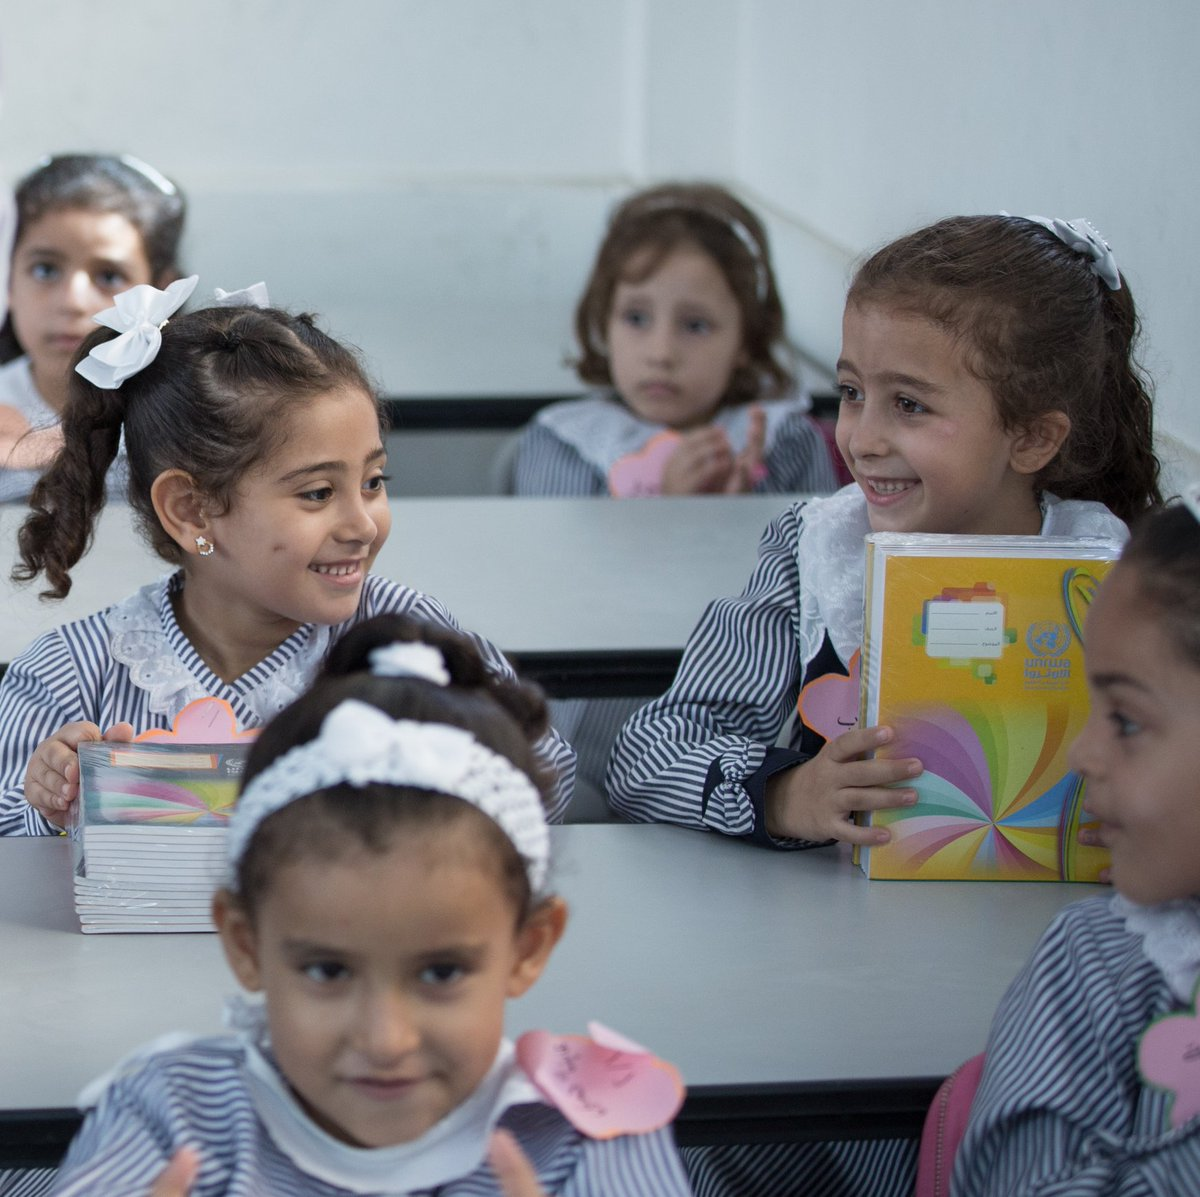 Lack of funding may prevent @UNRWA from reopening its classrooms to half a million Palestine refugee girls and boys. Education is their right. I call on donor countries to step up.  https://www. unrwa.org / &nbsp;  <br>http://pic.twitter.com/JBZDvMYC0J